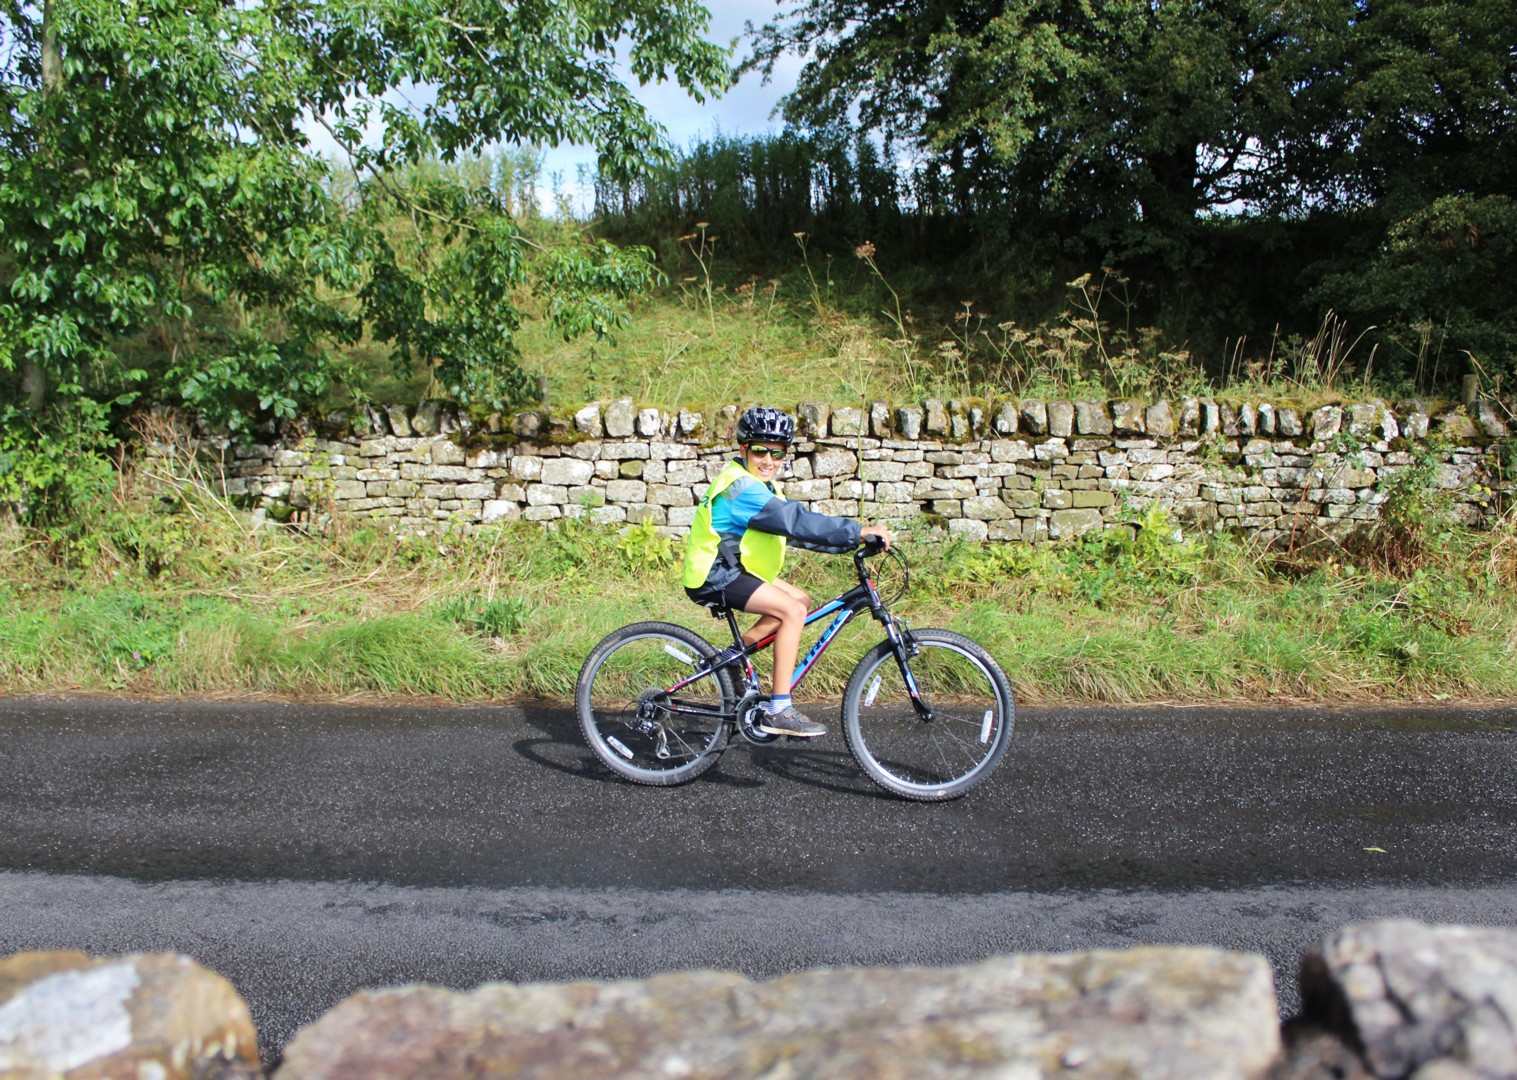 hadrians-wall-cycleway-supported-guide.jpg - UK - Hadrian's Cycleway 4 Day - Supported Family Cycling Holiday - Family Cycling